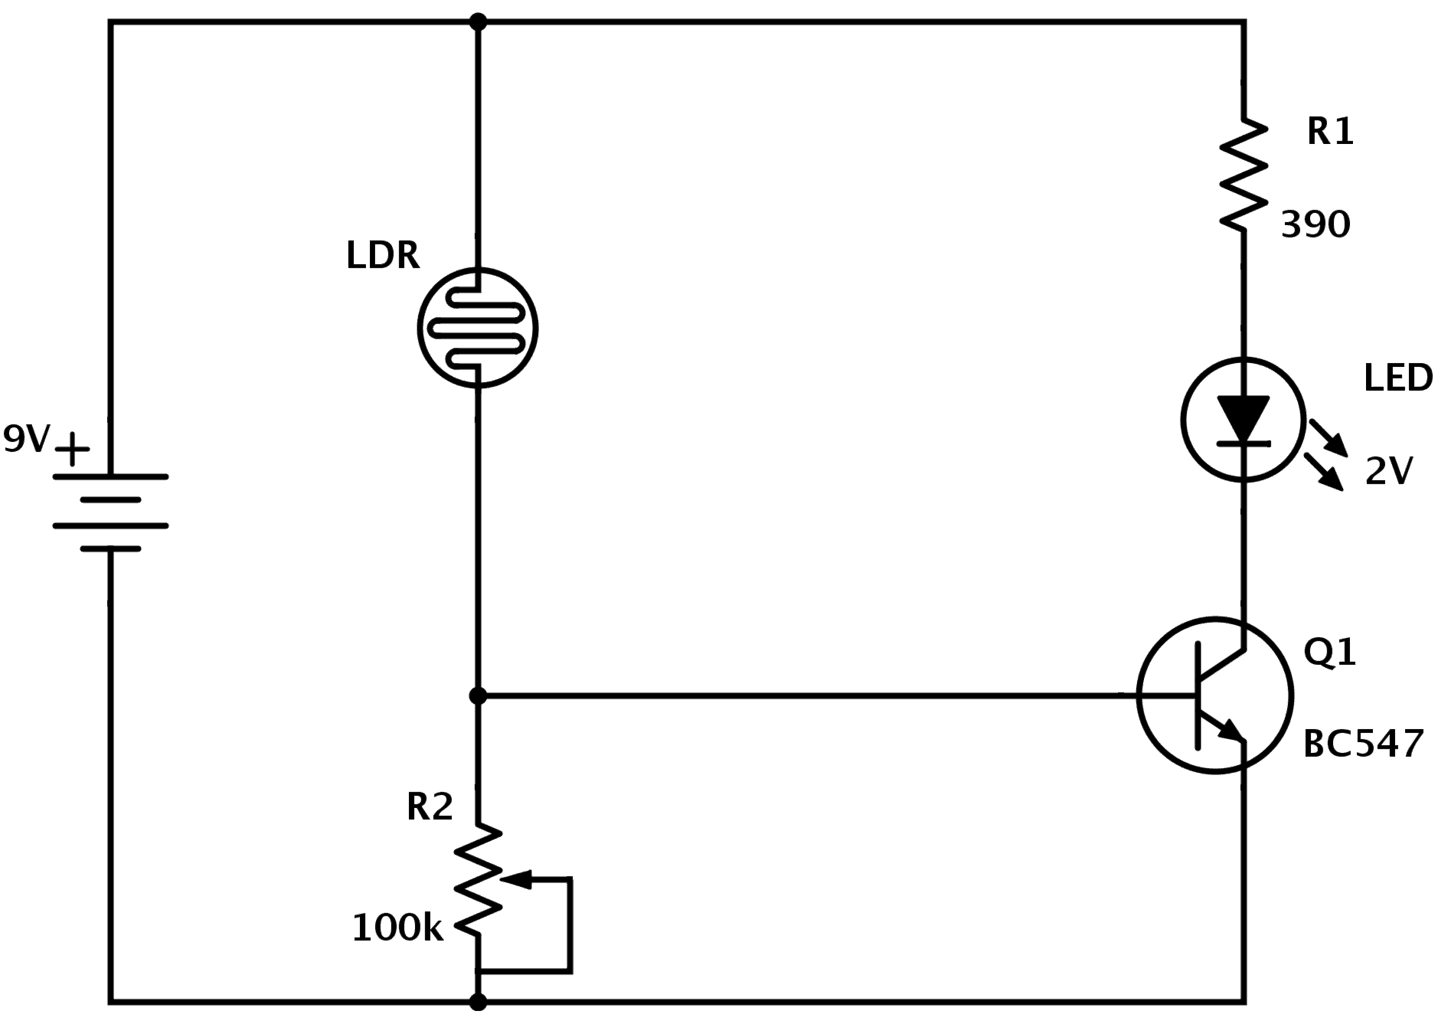 ldr circuit diagram build electronic circuits rh build electronic circuits com a circuit diagram of a kettle the circuit diagram definition